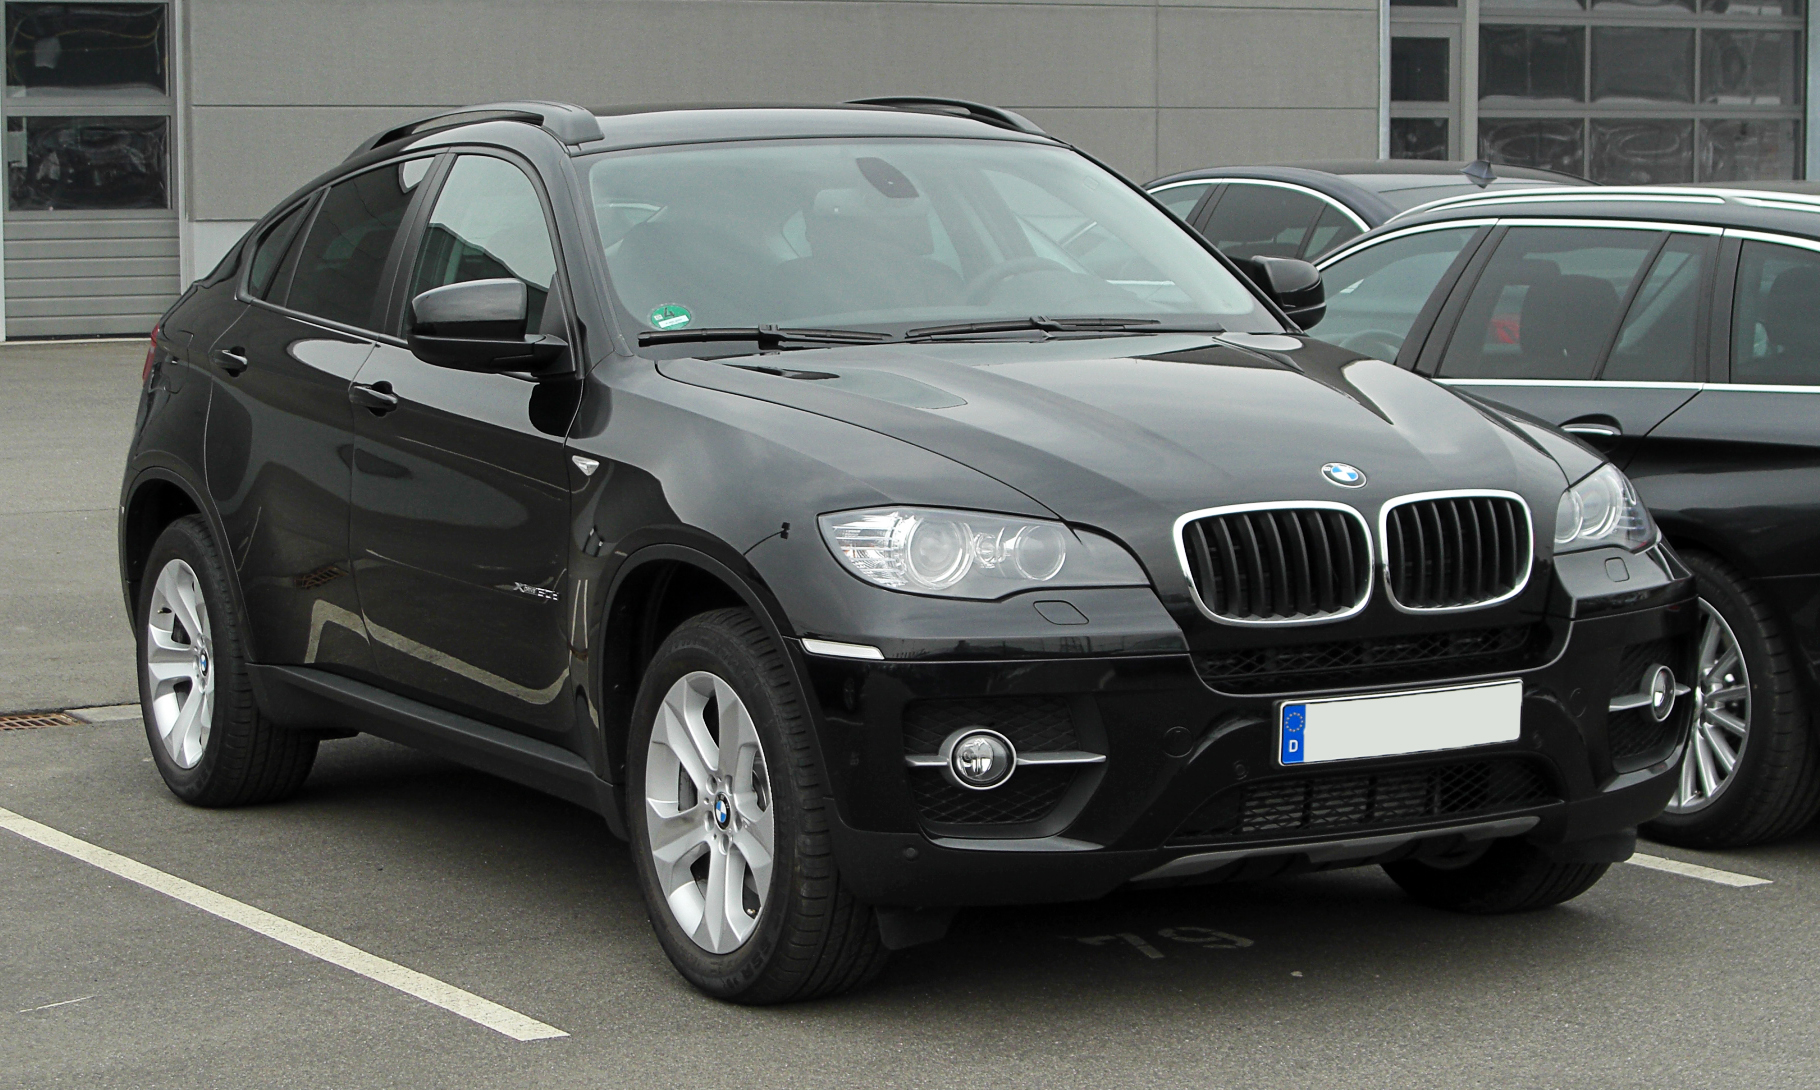 File Bmw X6 Xdrive30d E71 Frontansicht 26 M 228 Rz 2011 D 252 Sseldorf Jpg Wikimedia Commons